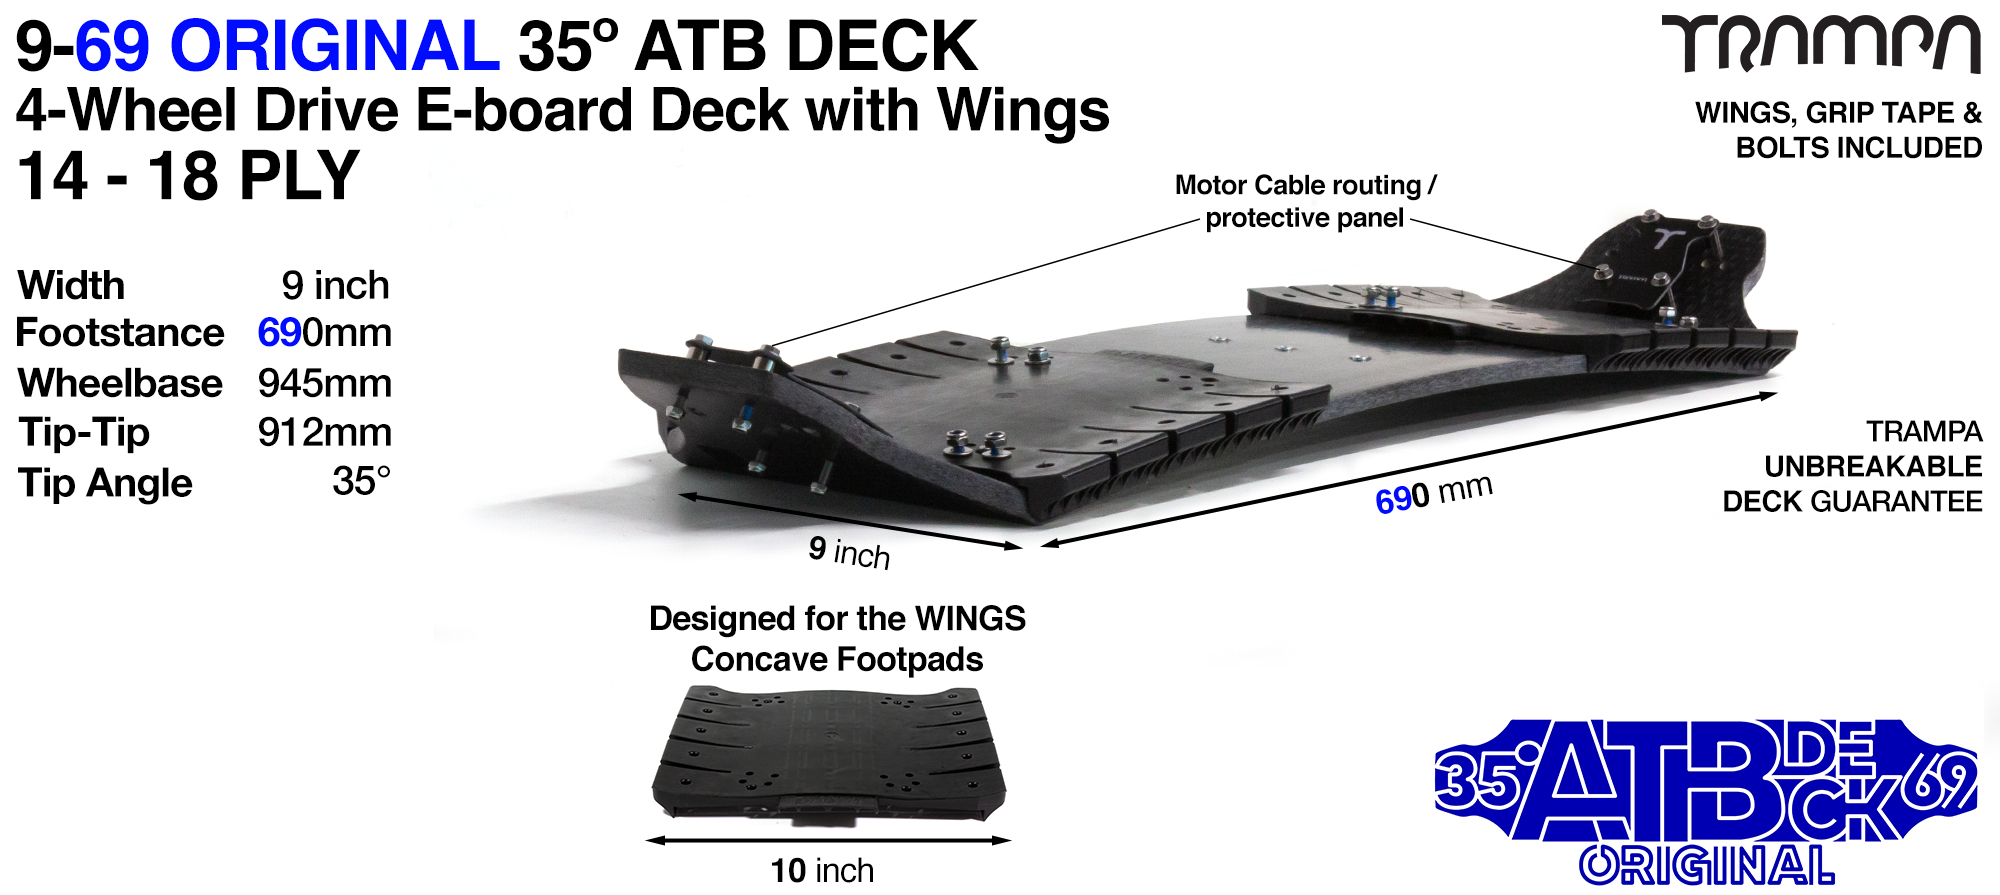 35° 9/69 TRAMPA 4WD-E WING Deck - Fix the WINGS to the deck to add W-Shape concave & the increase the width of the deck